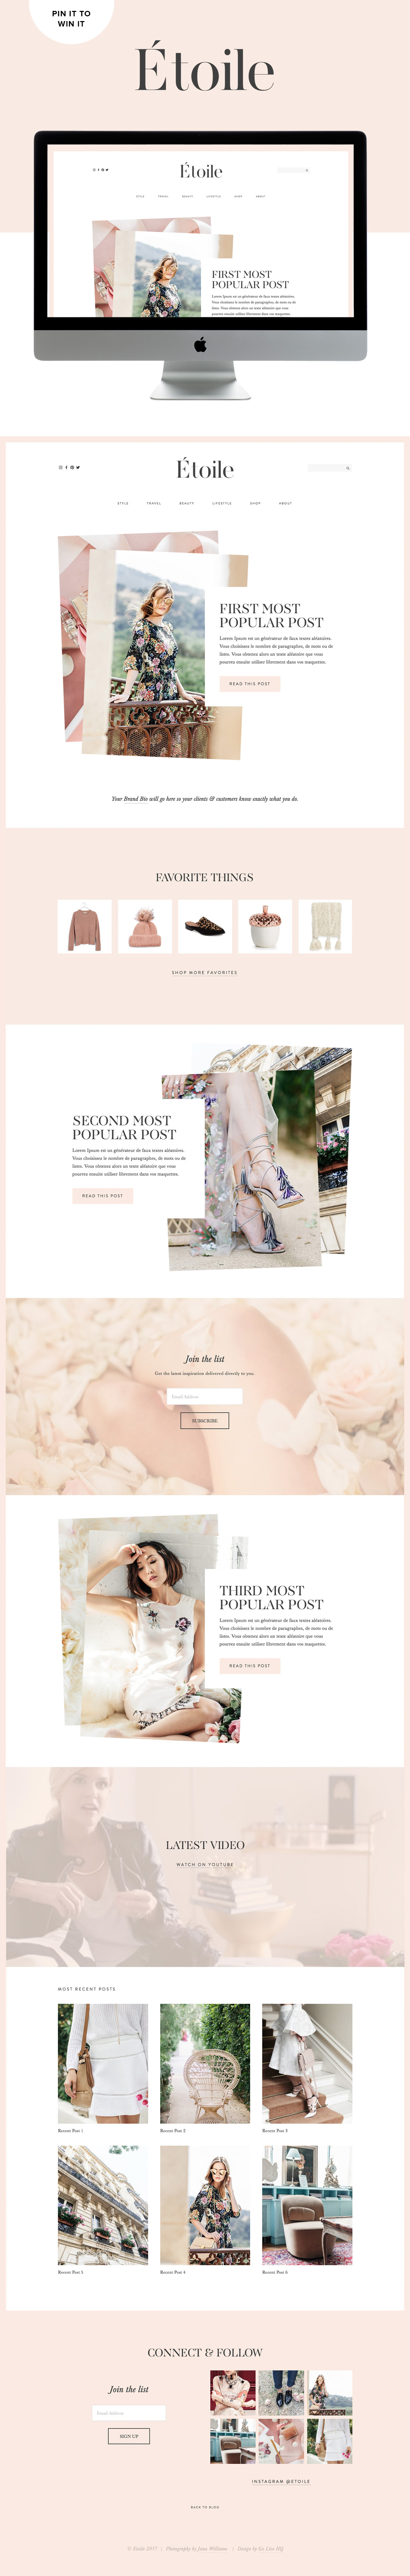 Editorial Fashion Blogger Website Template | By Go Live HQ